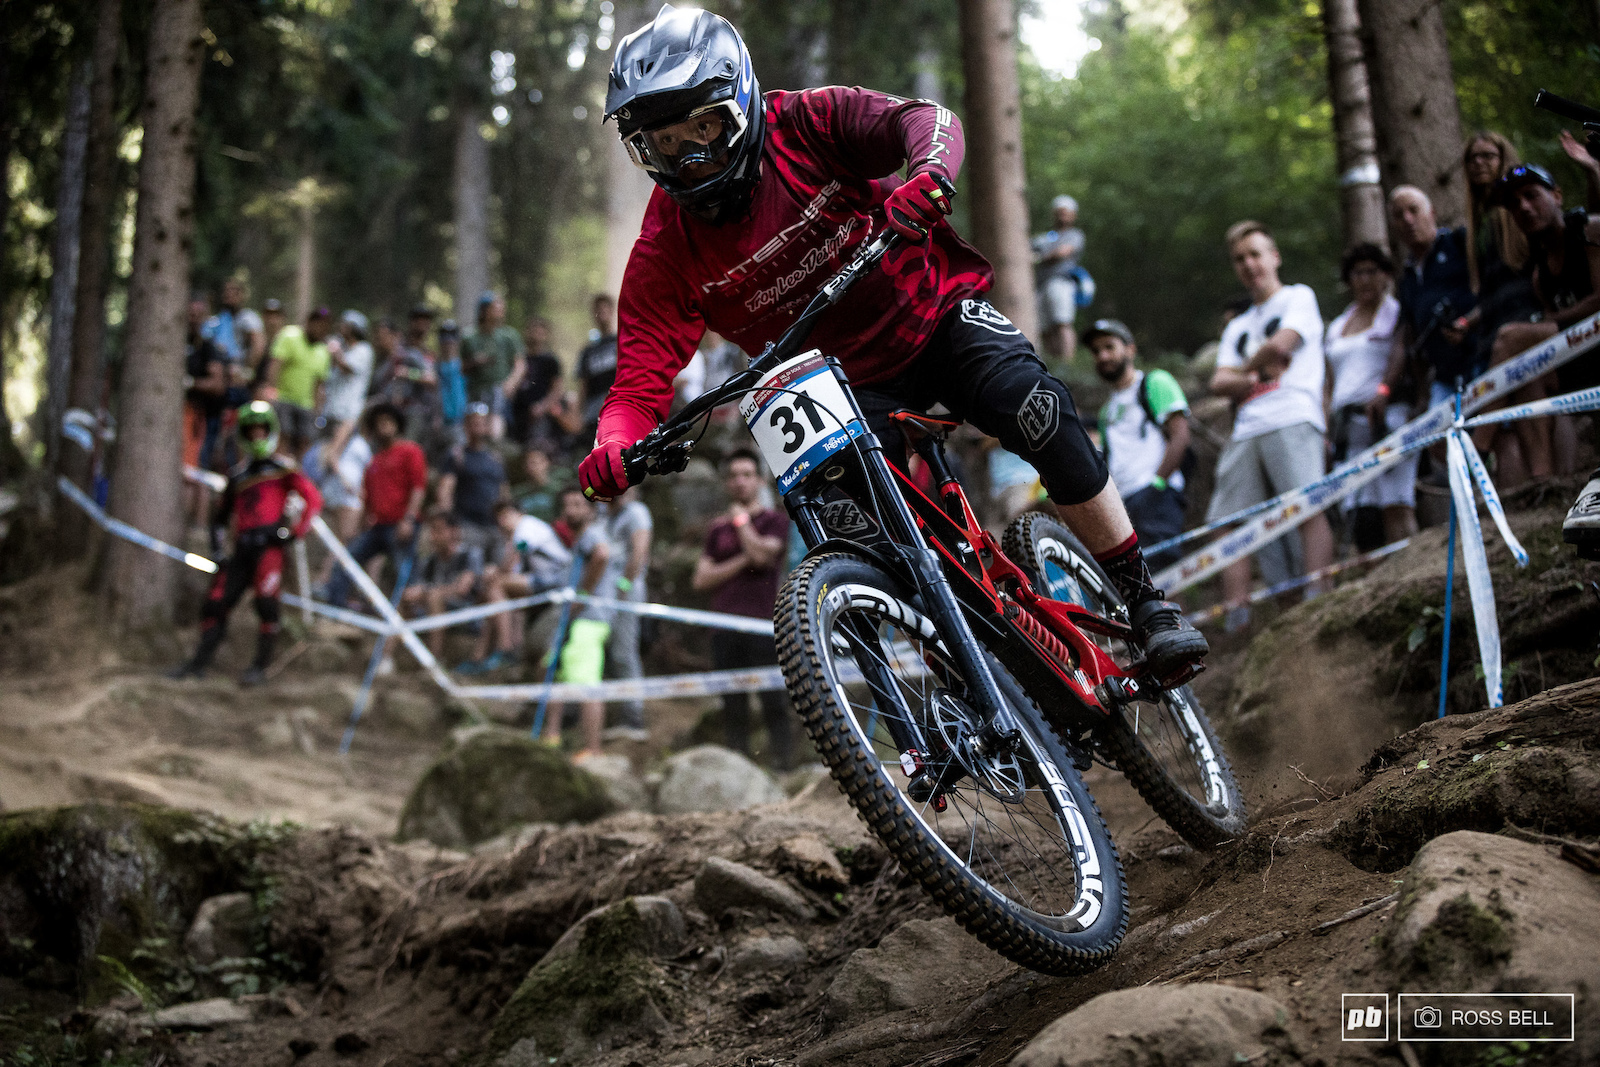 One of the surprises of the season has been the UK s Charlie Hatton who ended up in 11th today surely he ll be on a few teams shopping lists now.